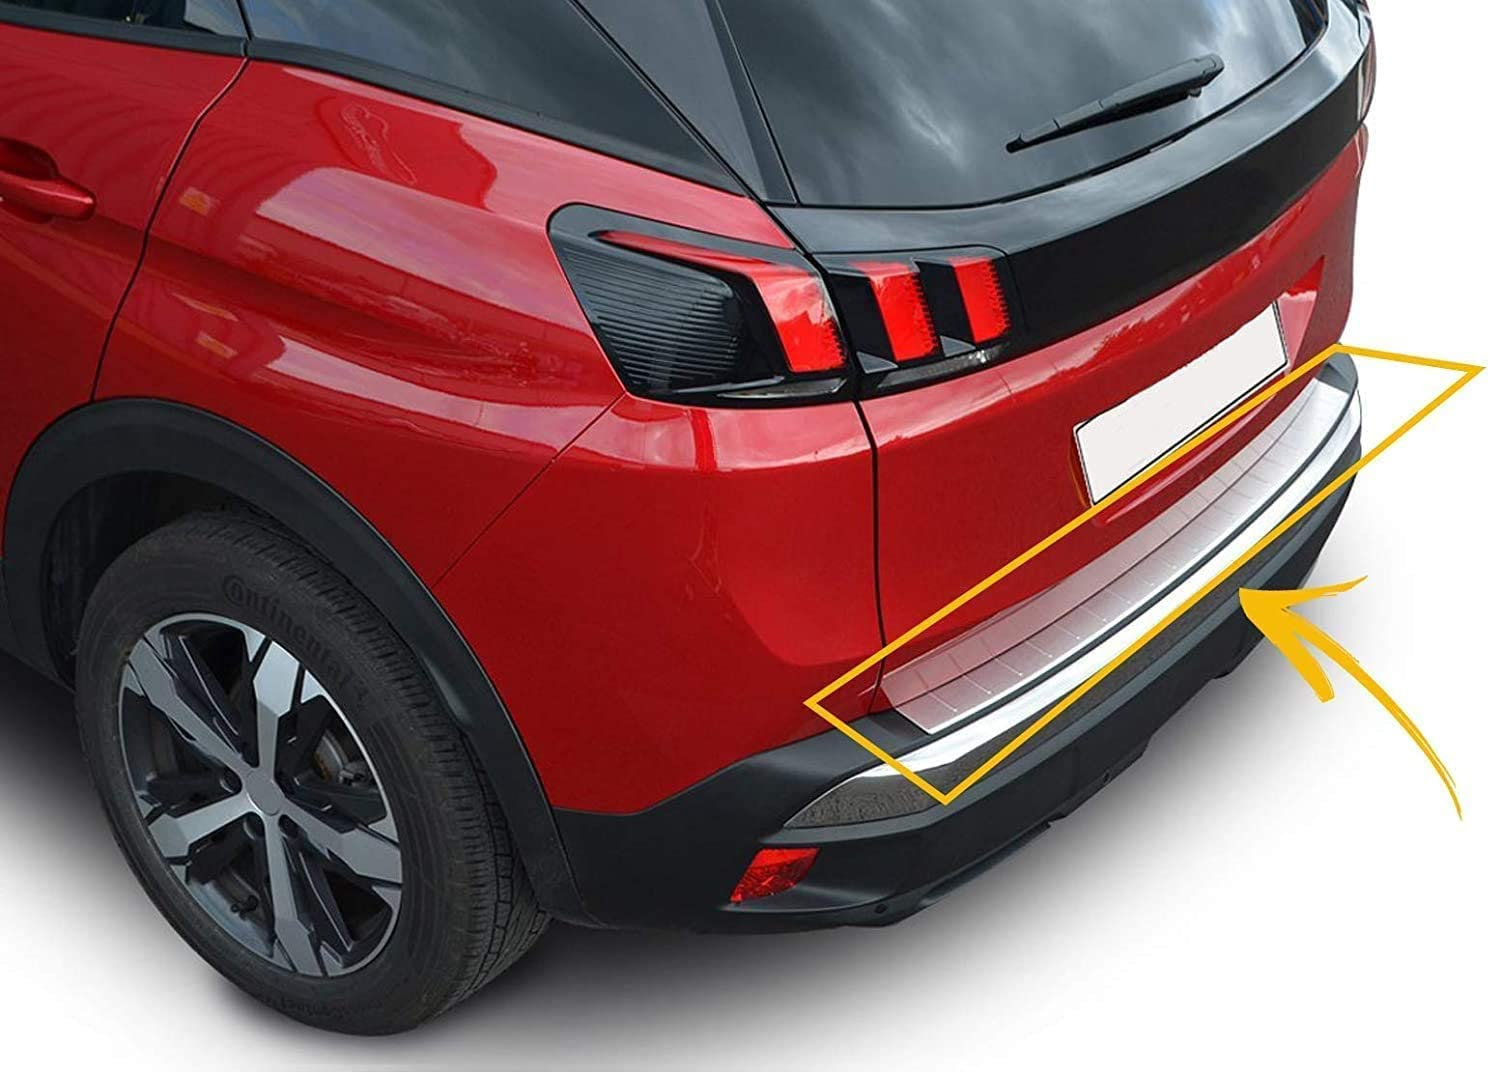 for Peugeot 3008 2016 UP Stainless Steel CHROME Rear Bumper Protector Sill Anti-Scratch Guard Cover